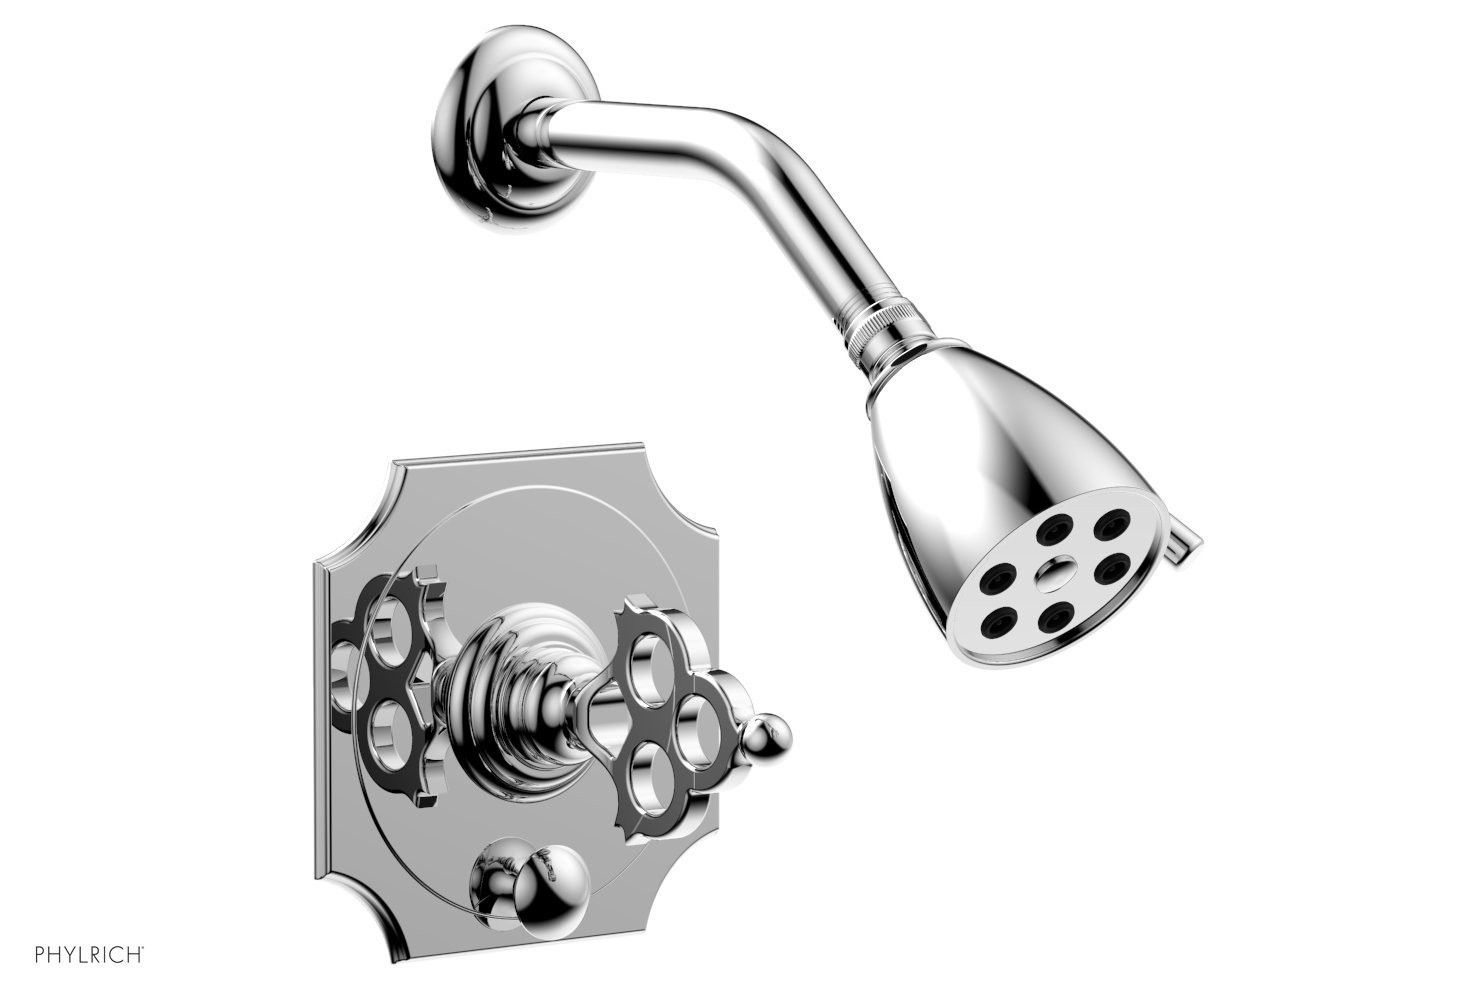 PHYLRICH 4-471 MAISON WALL MOUNT PRESSURE BALANCE SHOWER AND DIVERTER SET WITH BLADE HANDLE